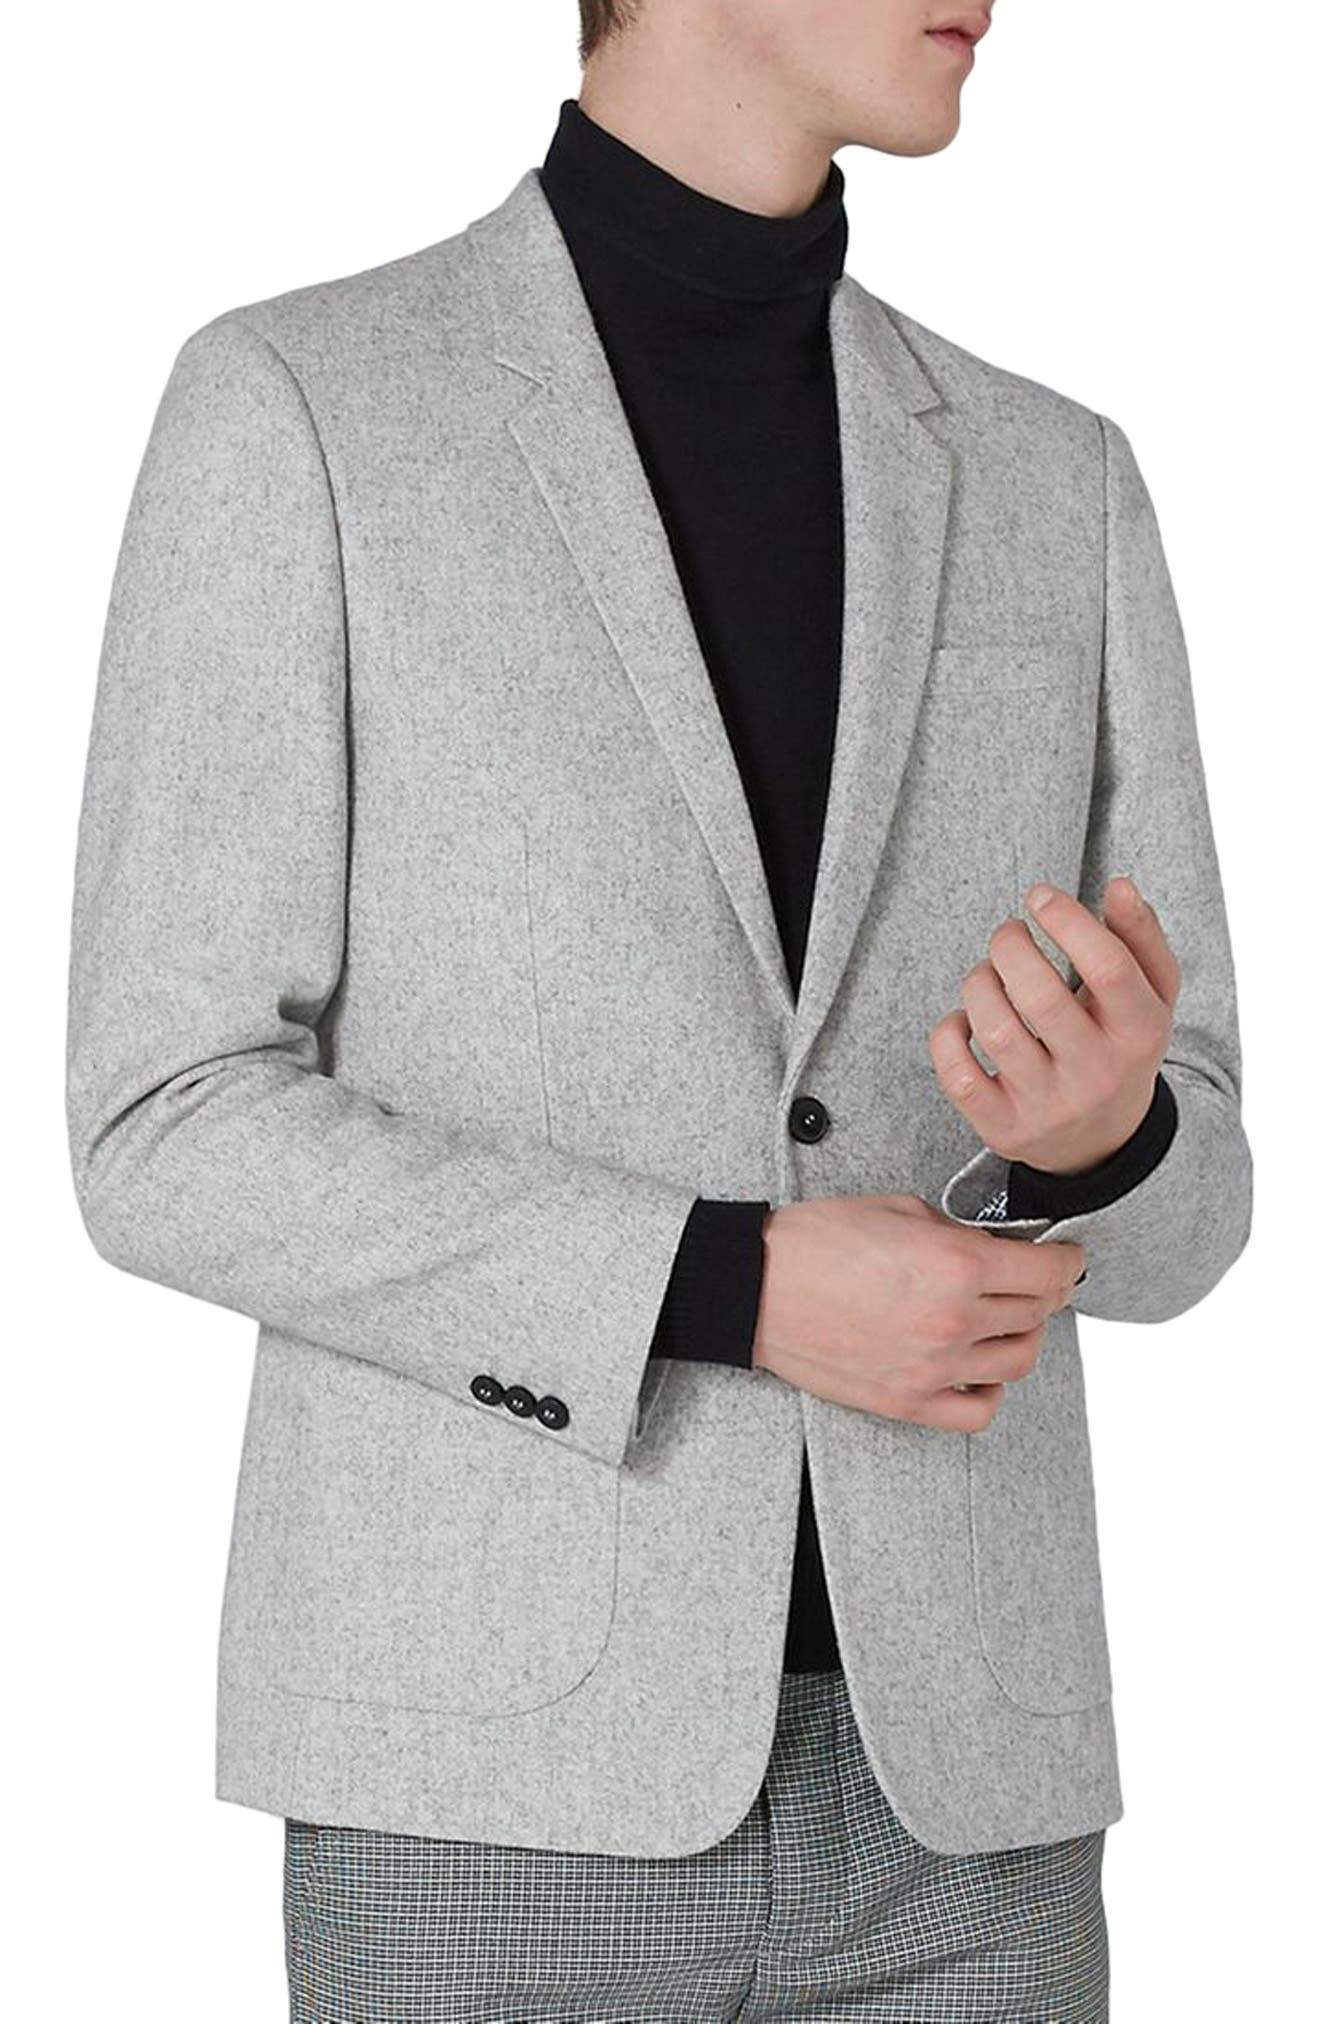 Murdoch One-Button Jacket,                             Main thumbnail 1, color,                             050